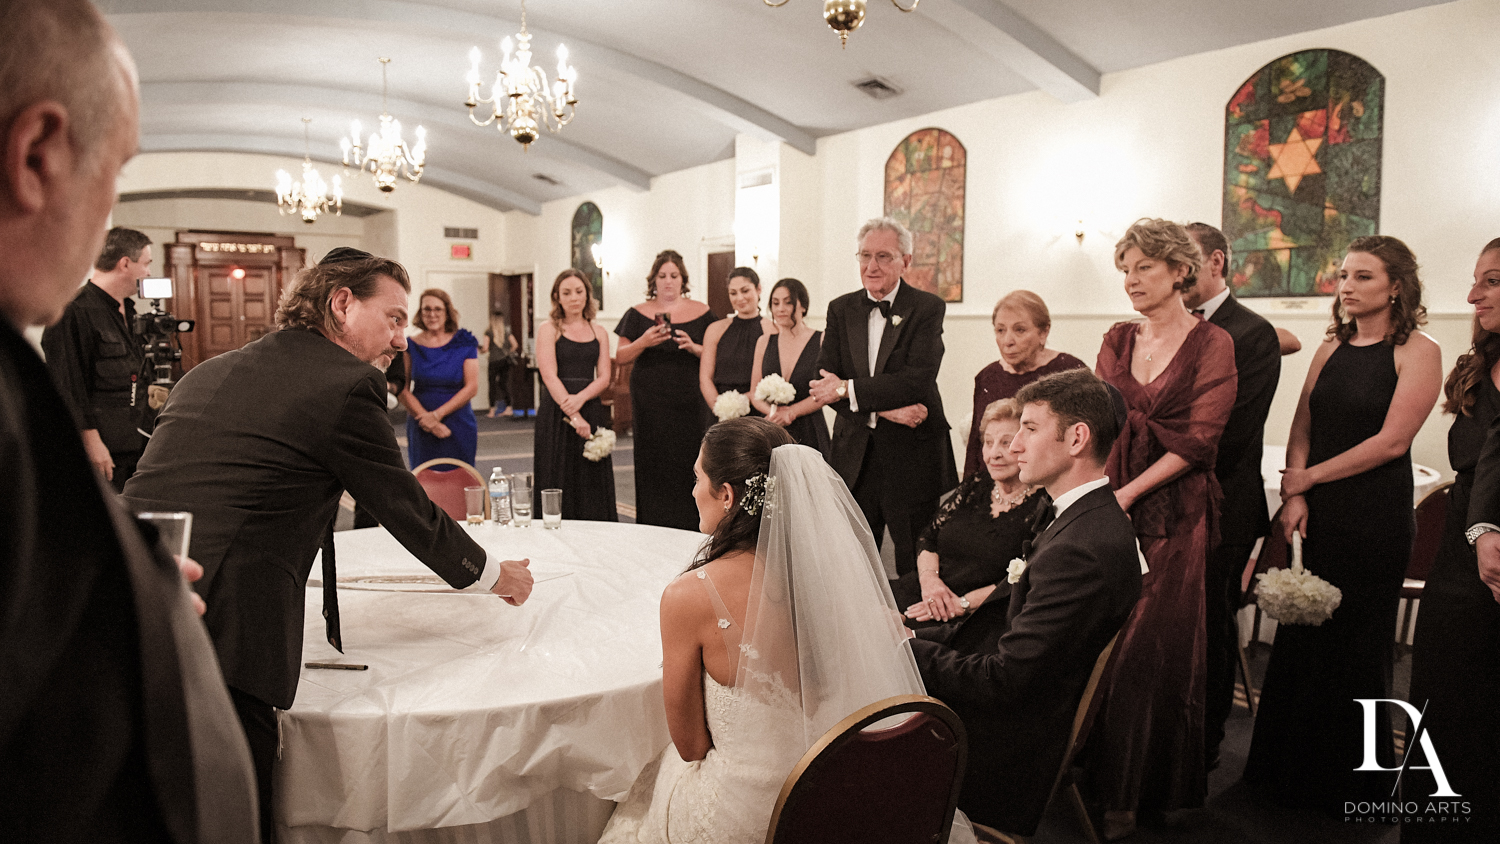 ketubah at Classic Miami Beach Wedding at Temple Emanu-El and Emanuel Luxury Venue by Domino Arts Photography